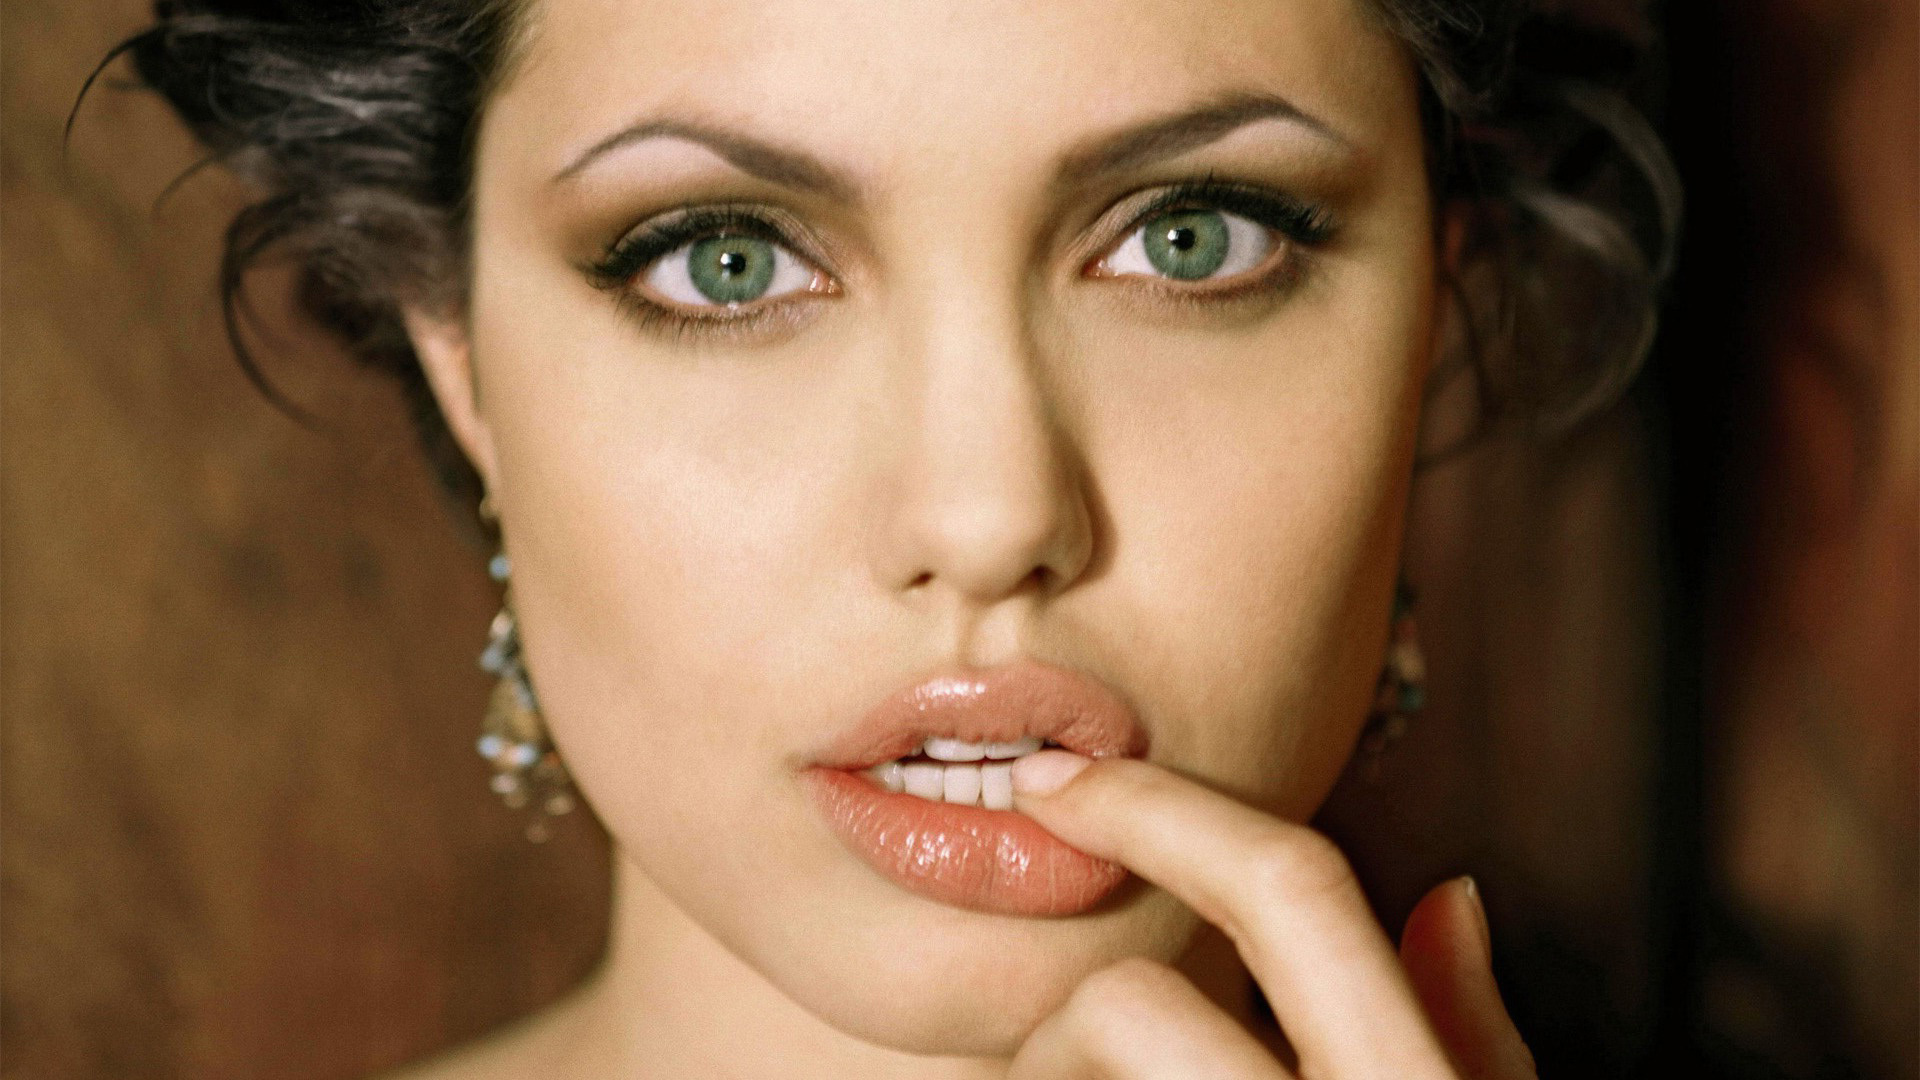 Angelina Jolie Hd Wallpapers Photos Pictures And Images HD Wallpapers Download Free Images Wallpaper [1000image.com]